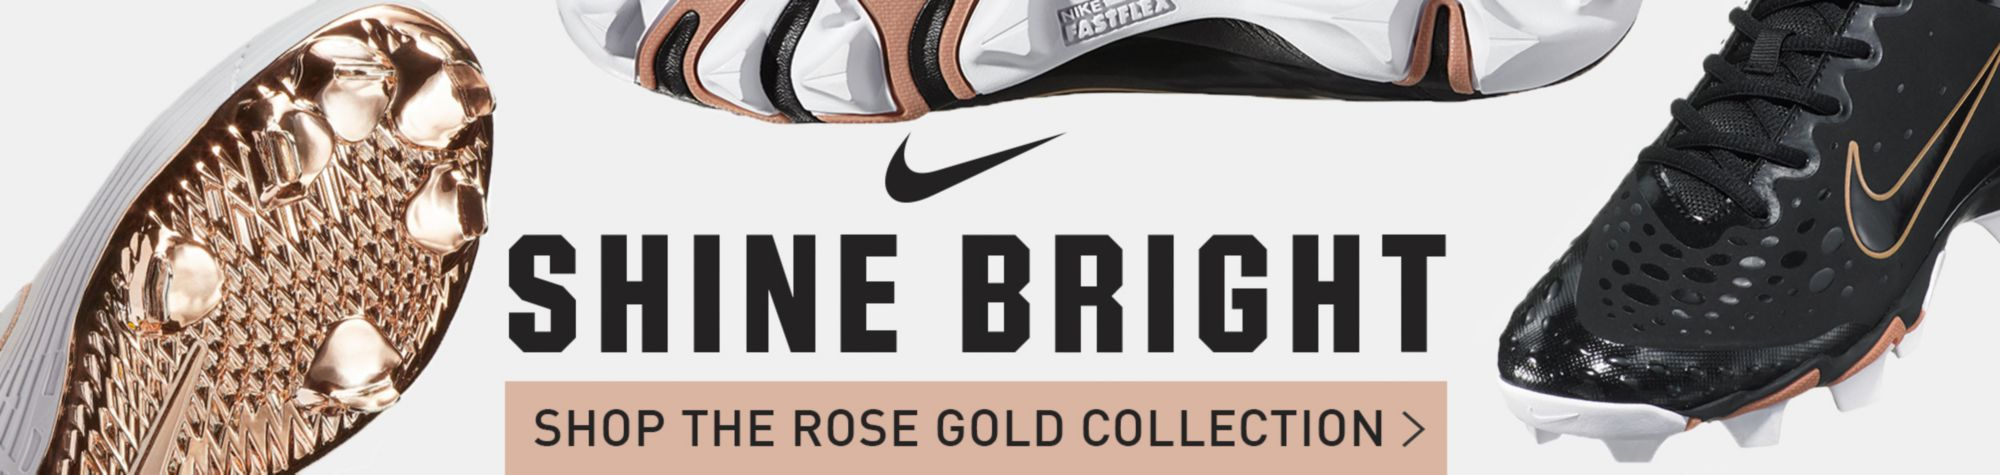 Shine Bright - Shop the Rose Gold Collection